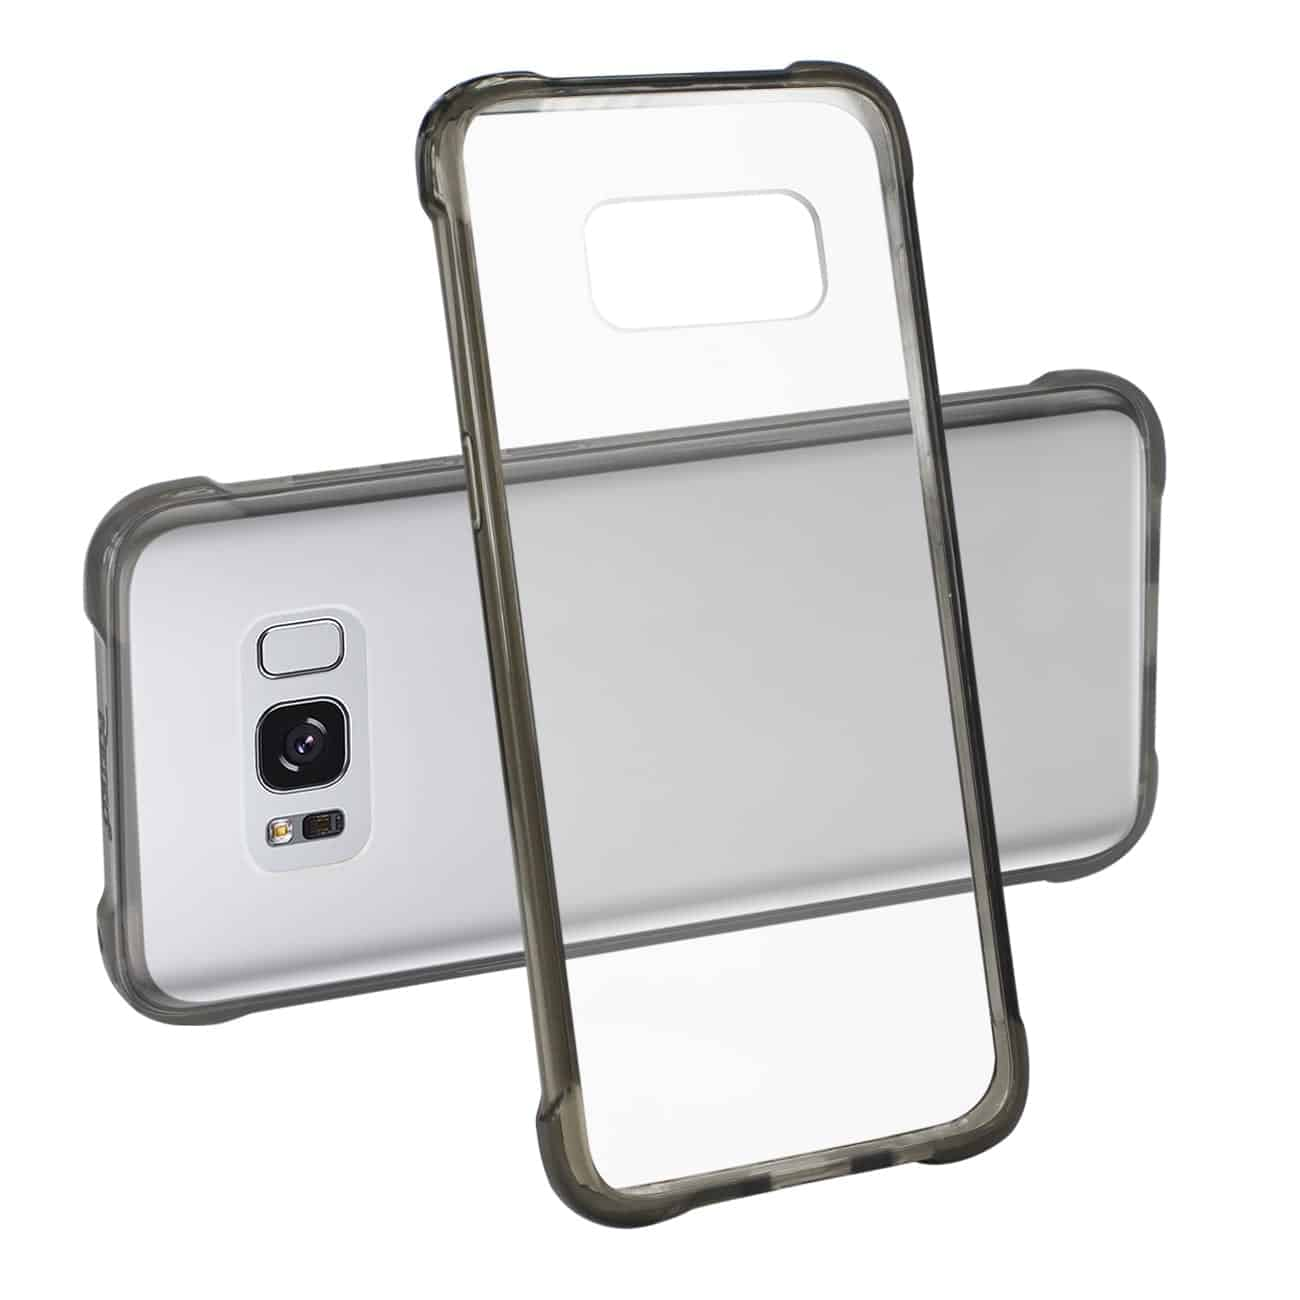 Samsung Galaxy S8 Edge/ S8 Plus Clear Bumper Case With Air Cushion Protection In Clear Black